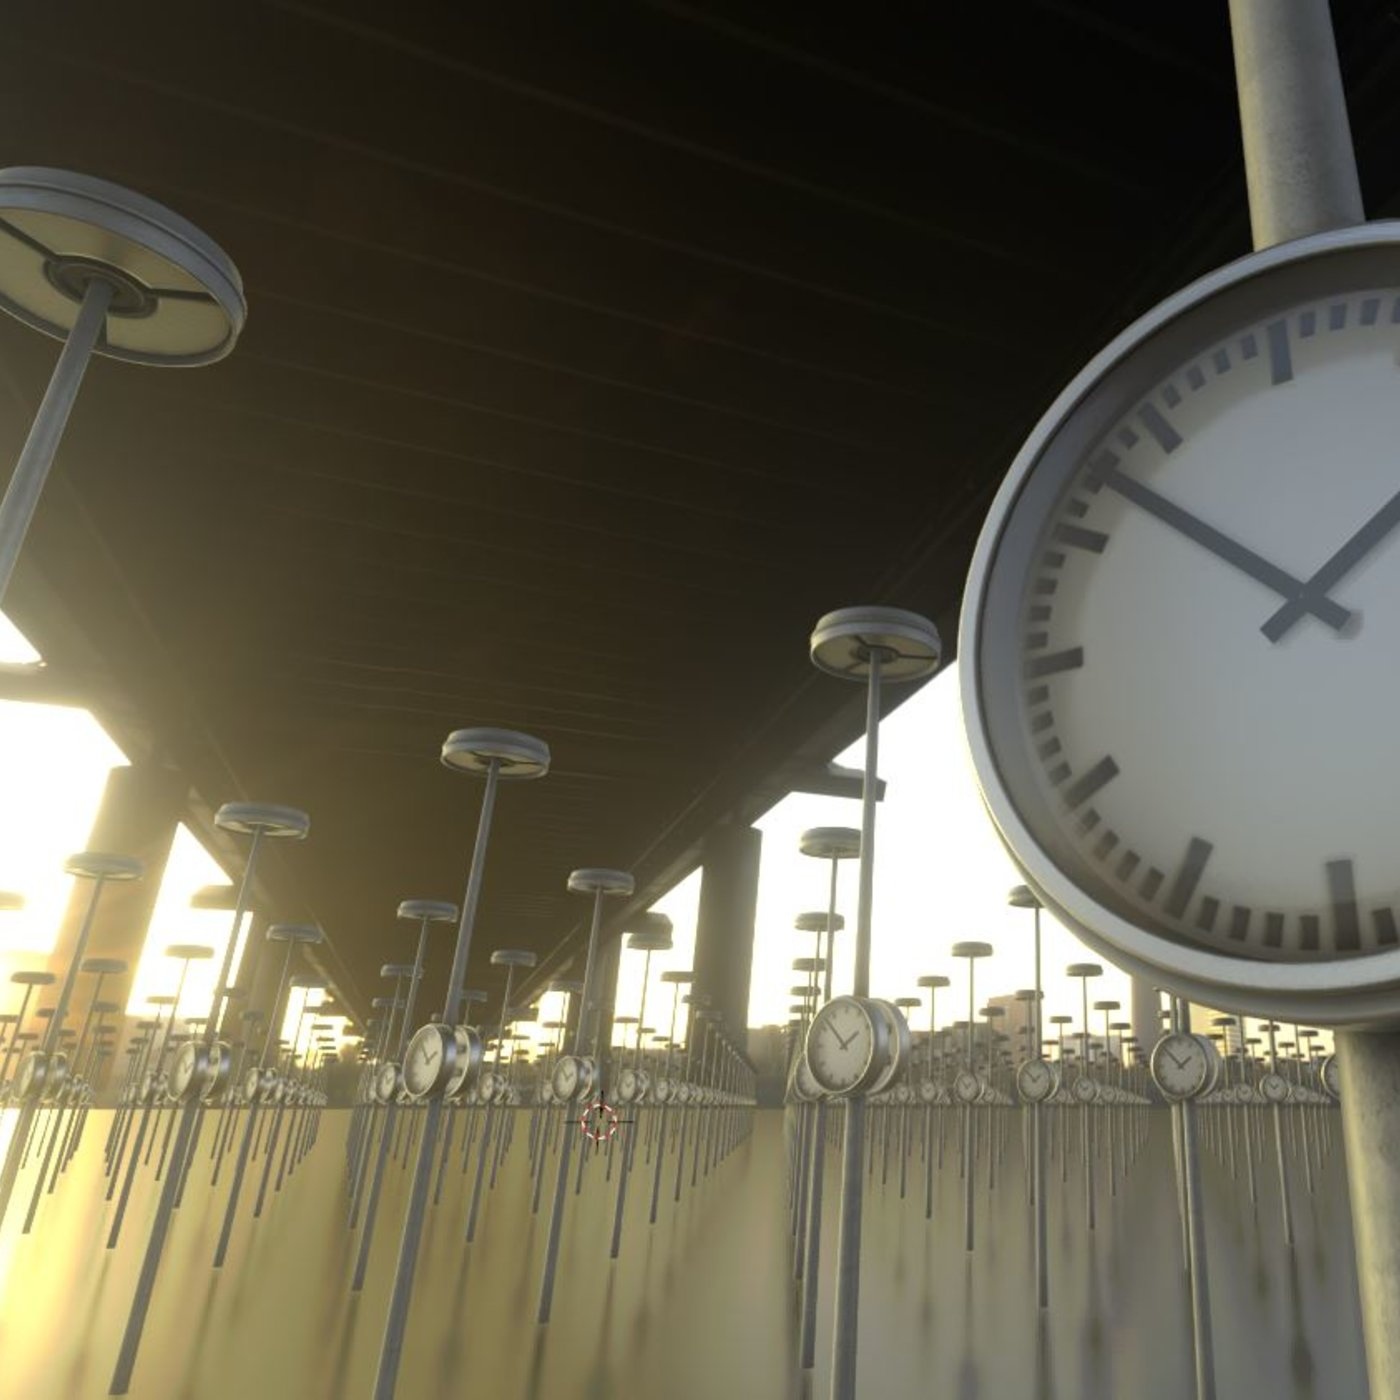 Street Light -1- with station clock